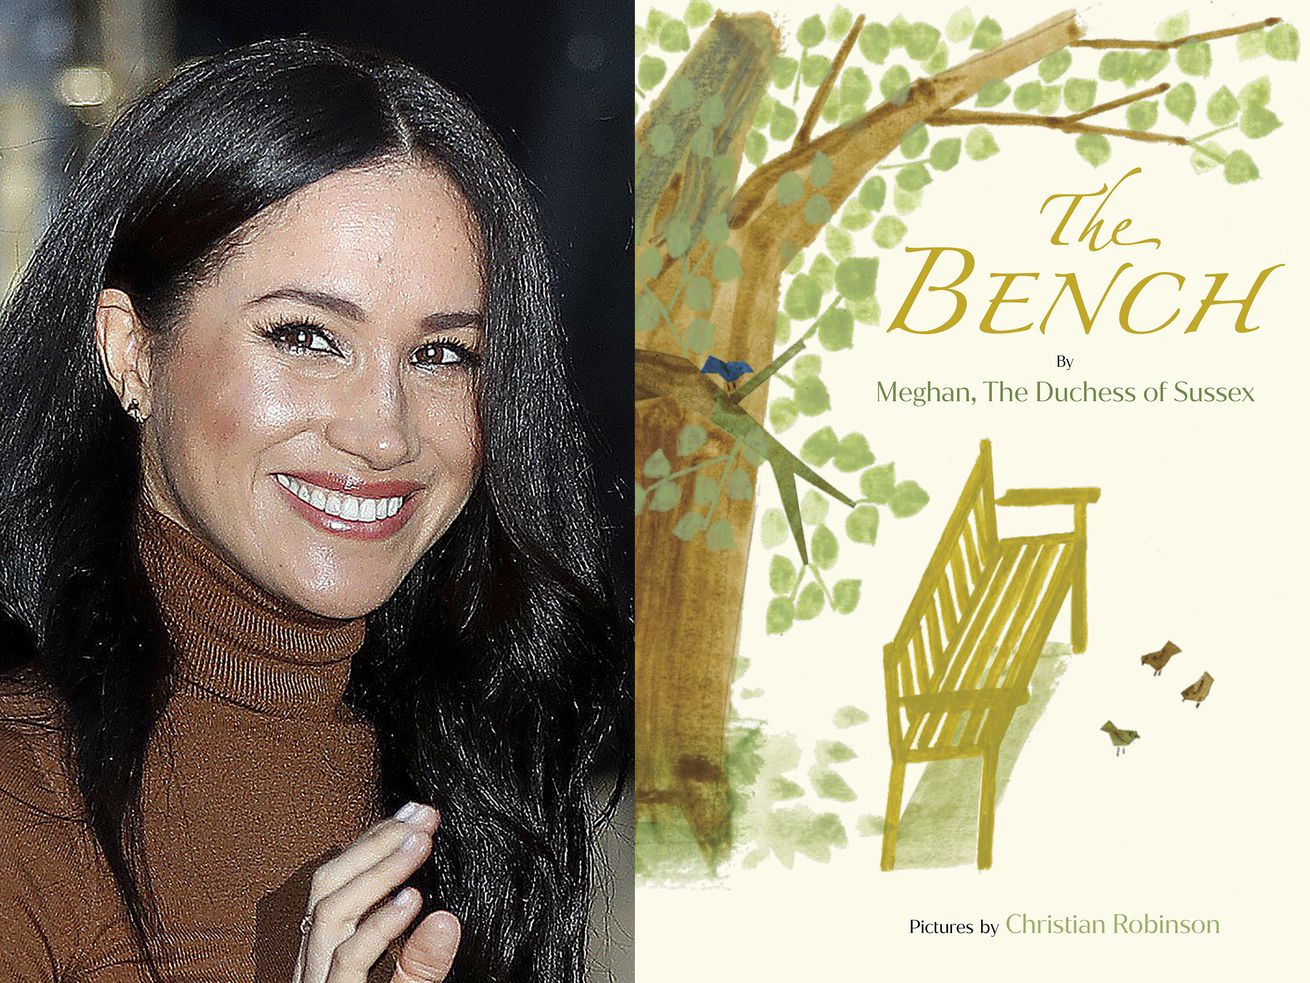 """Meghan, the Duchess of Sussex and and the cover art for her upcoming children's book """"The Bench,"""" with pictures by Christian Robinson."""